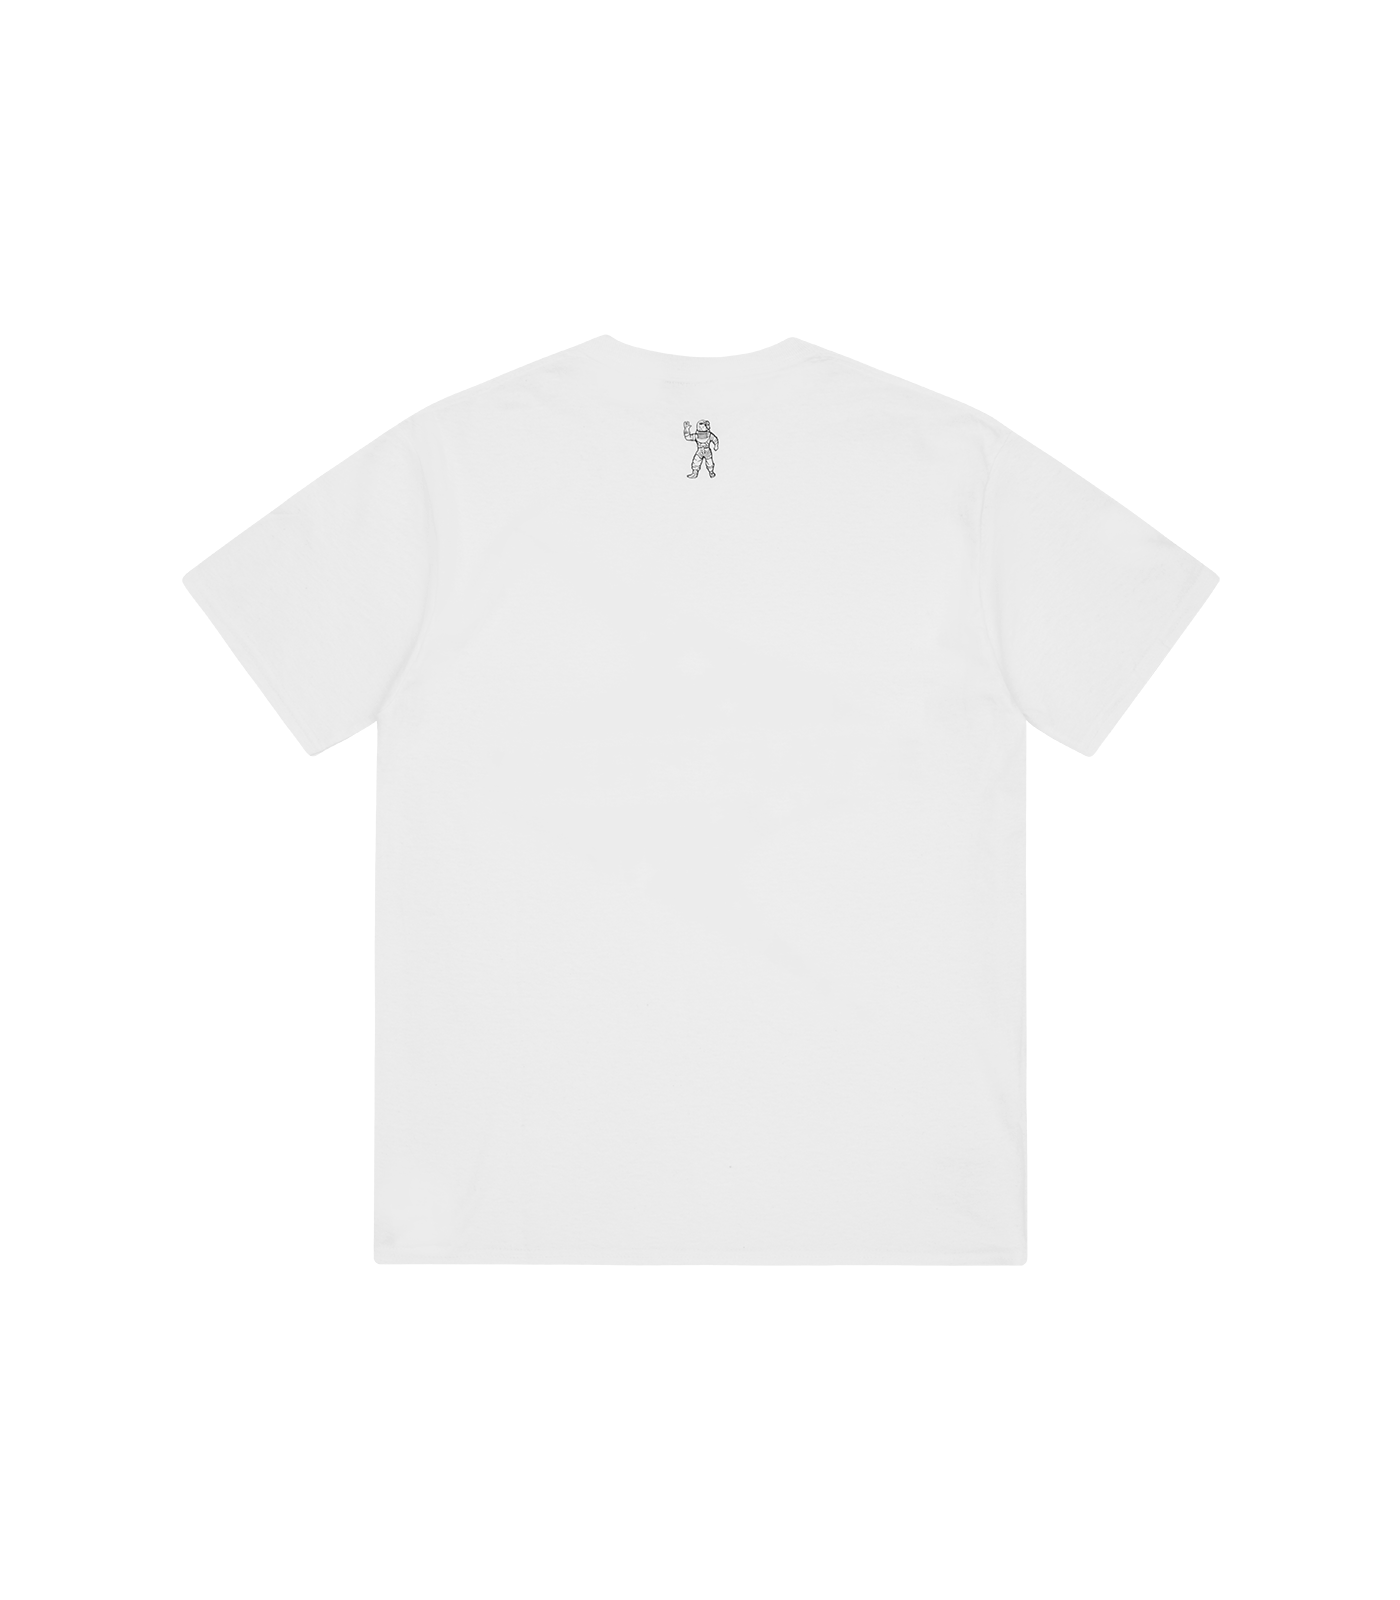 STARTRAK STARFIELD T-SHIRT - WHITE